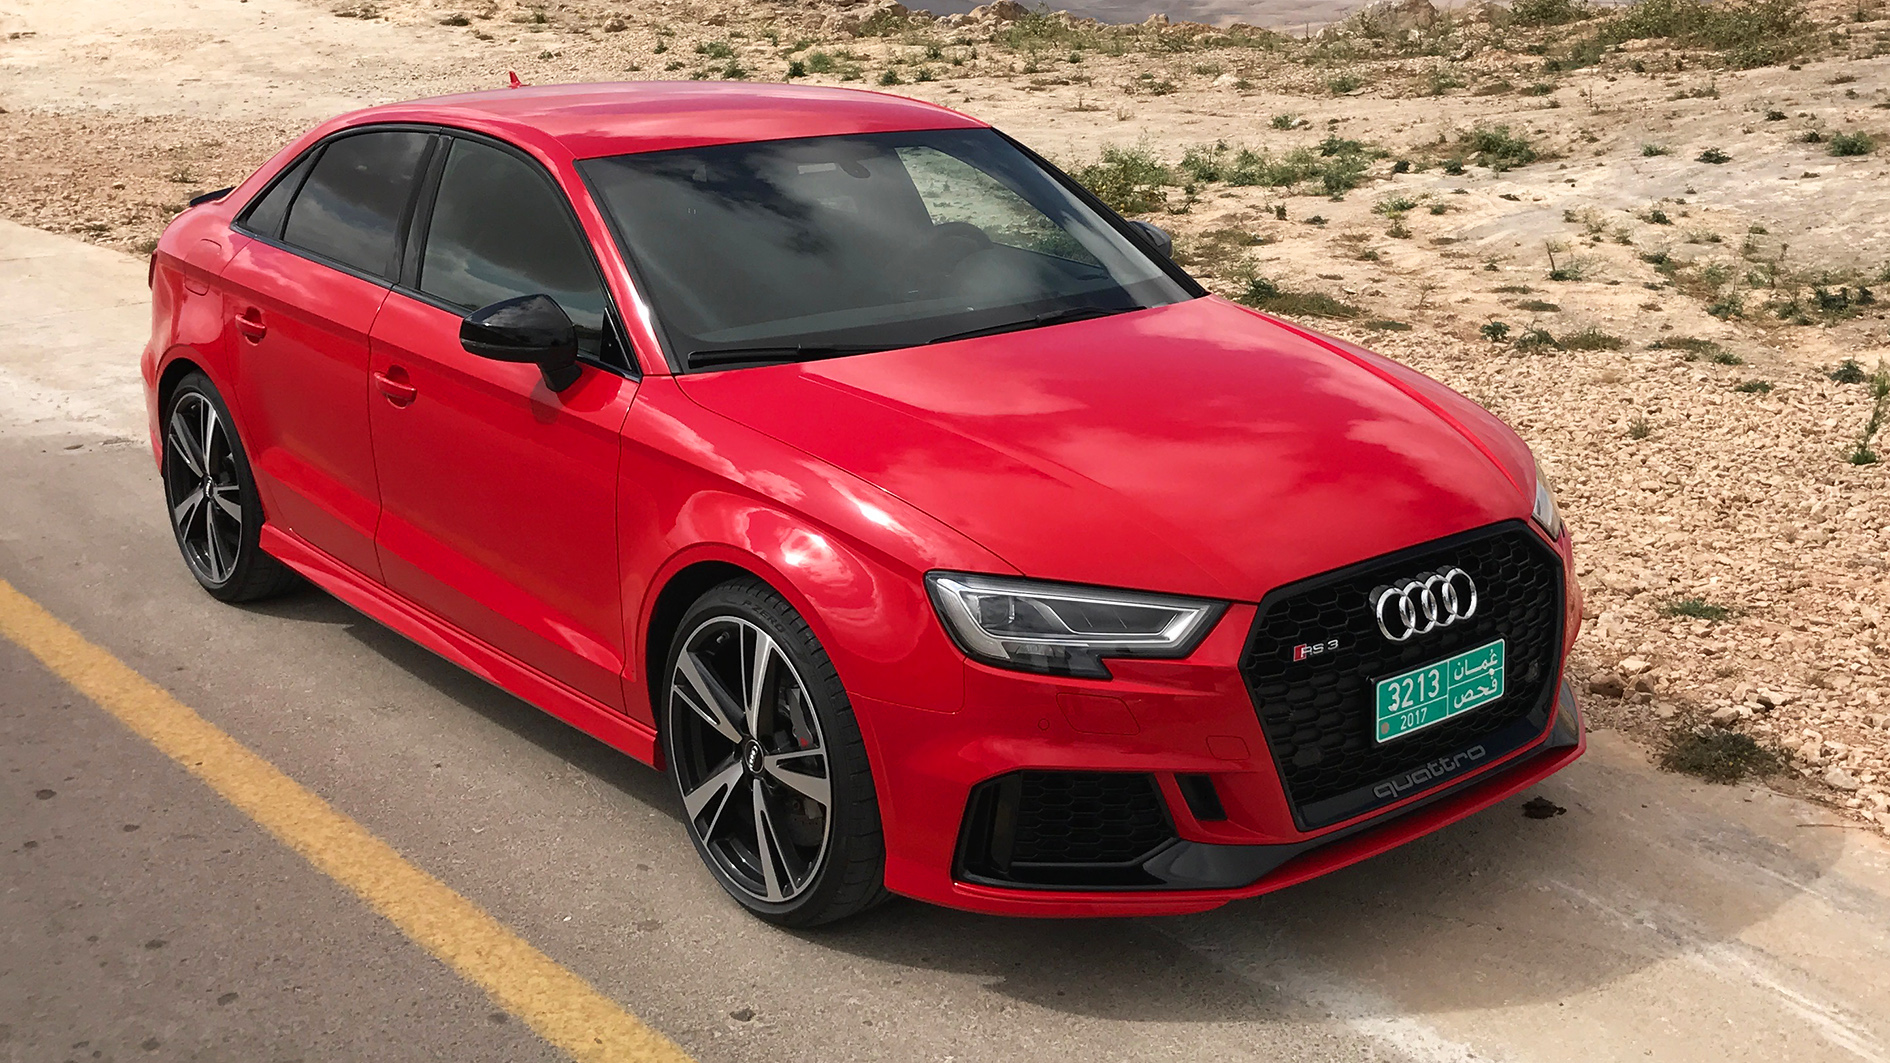 new audi rs3 sedan 2017 review driving report test drive english. Black Bedroom Furniture Sets. Home Design Ideas